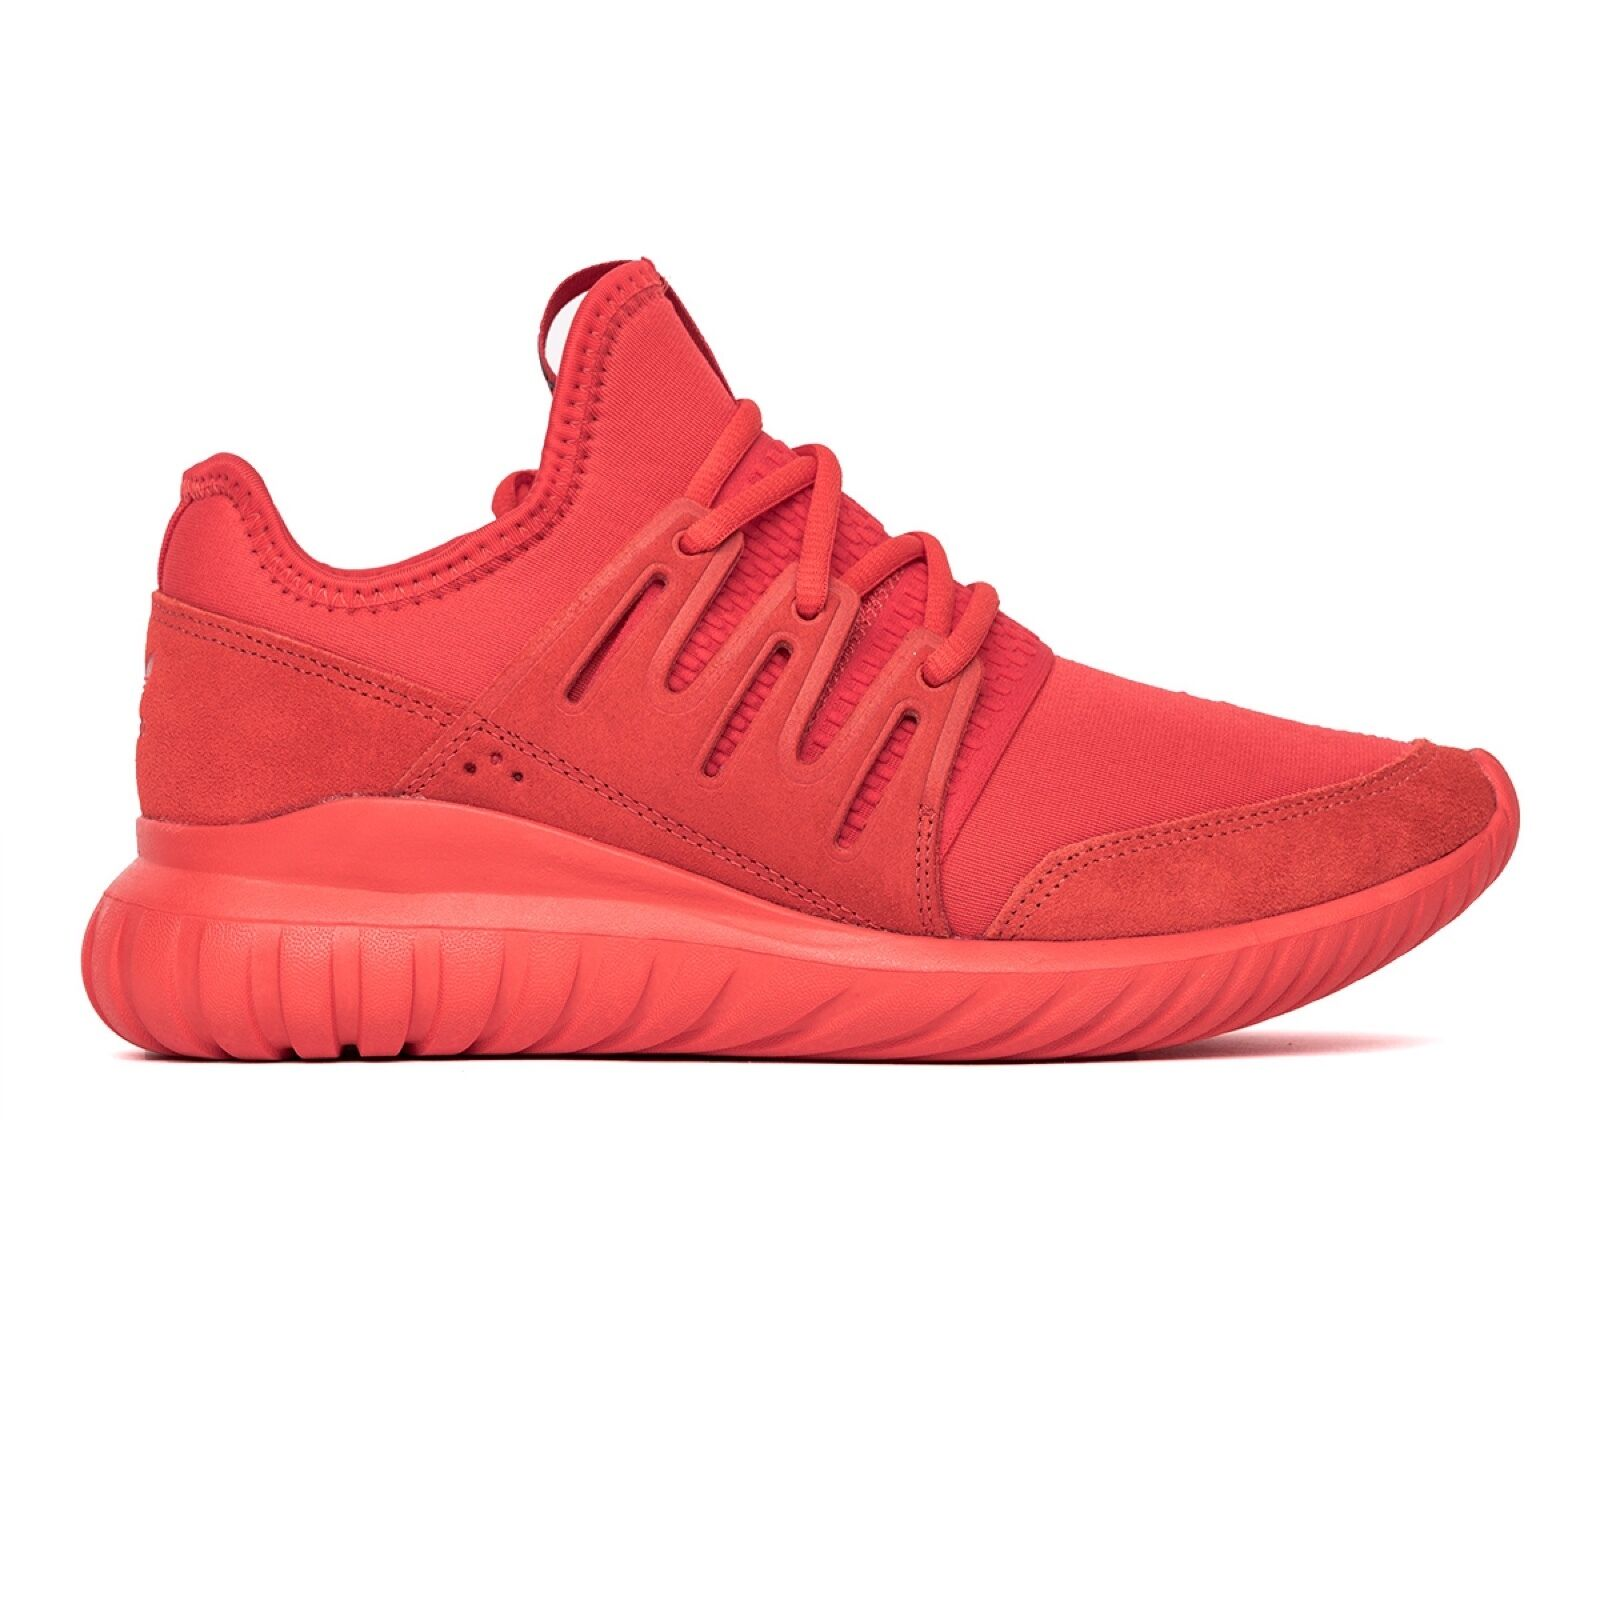 Men's Adidas Tubular Radial Solar Red Athletic Fashion Sneakers S80116 MSRP 110